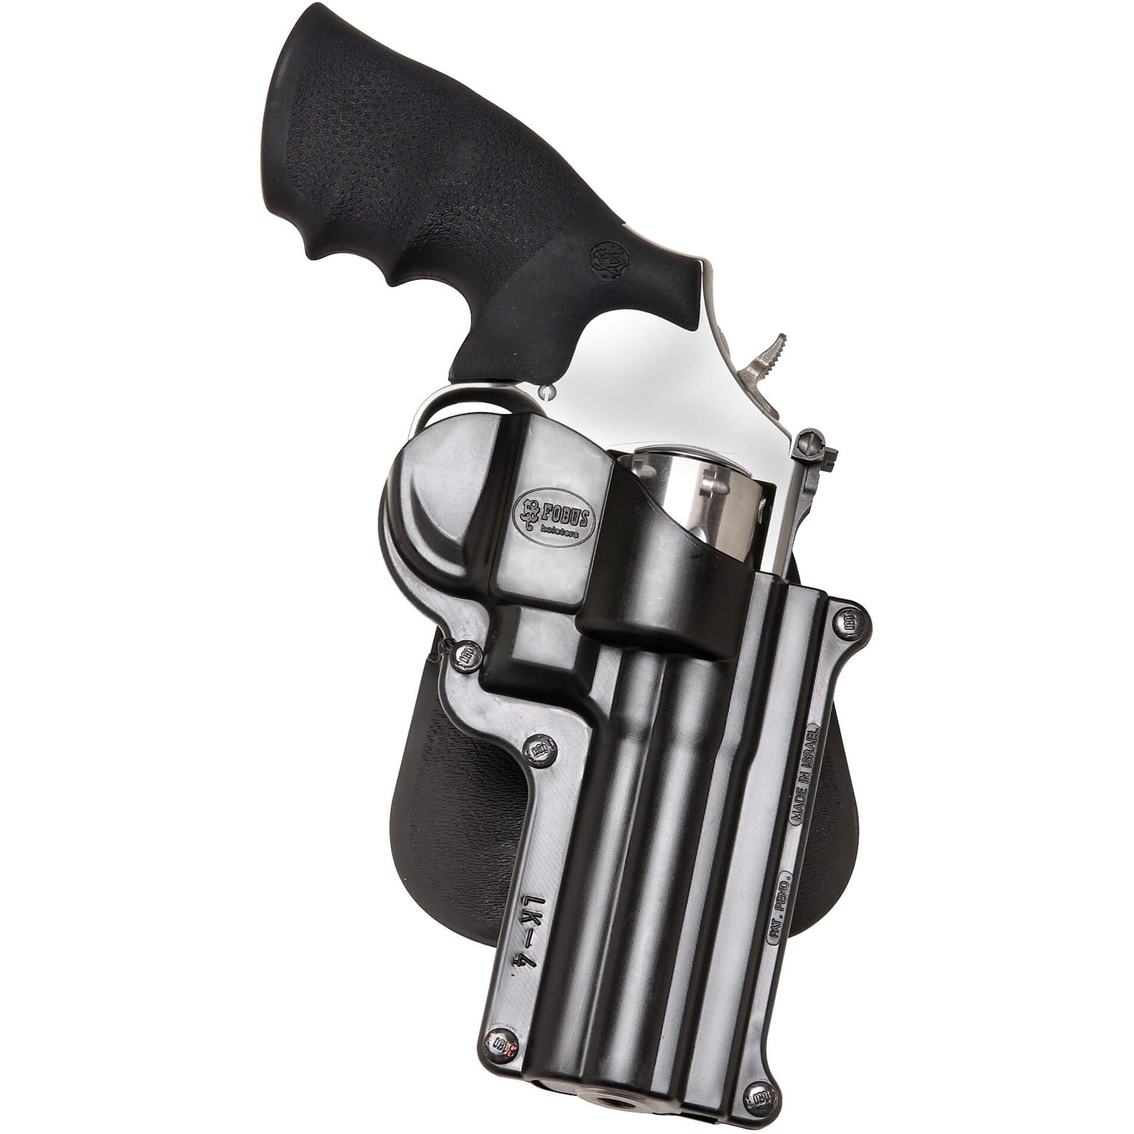 Fobus Paddle Belt Holster Fits S&w 4 In. L/k Frame | Holsters ...